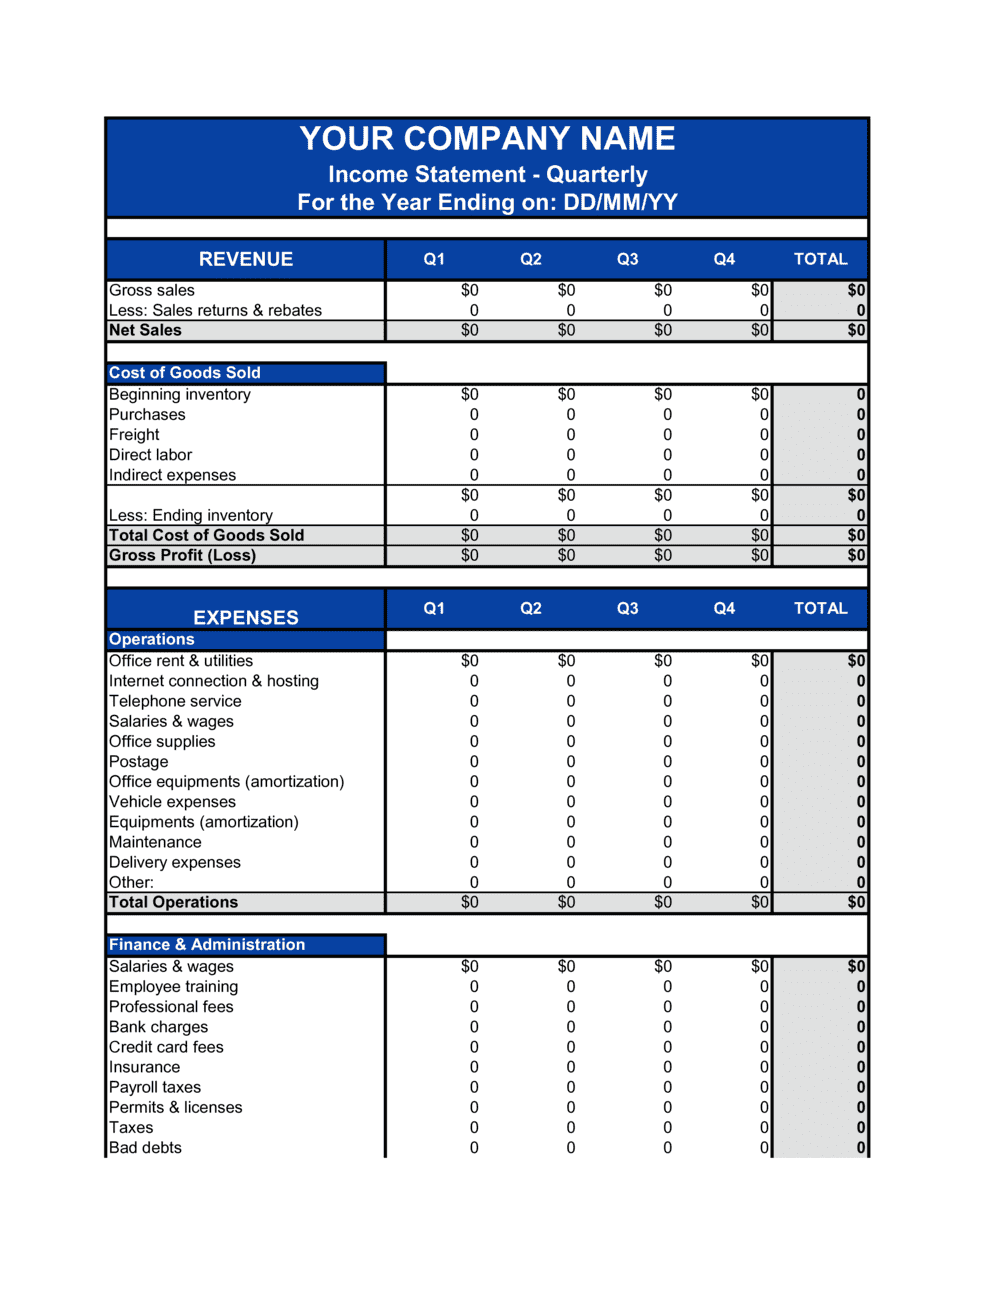 Business-in-a-Box's Income Statement_Quarterly Template